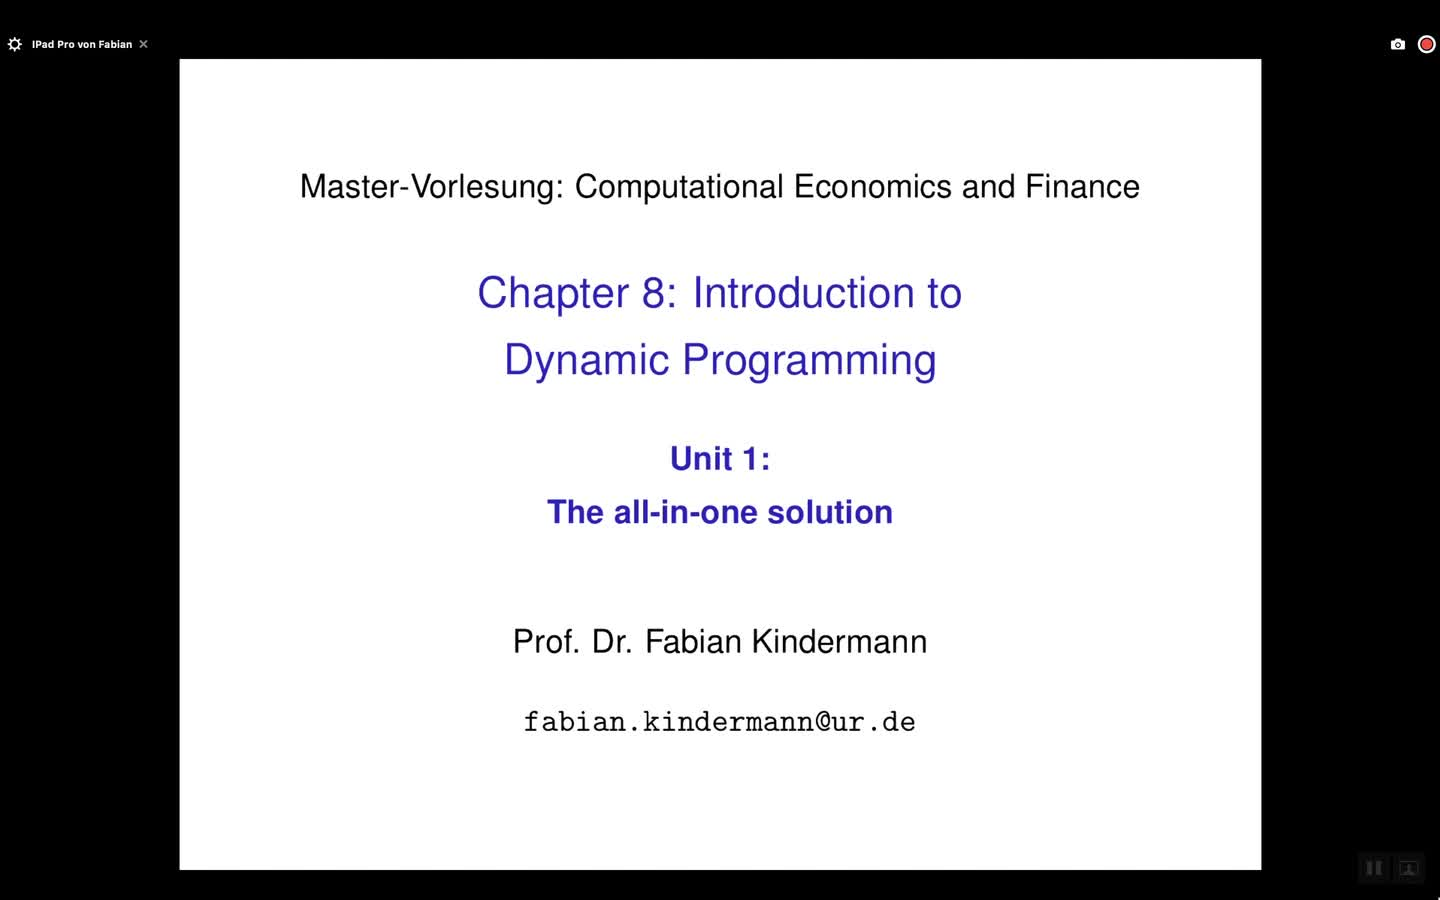 Chapter 8 - Unit 1 - The all-in-one solution